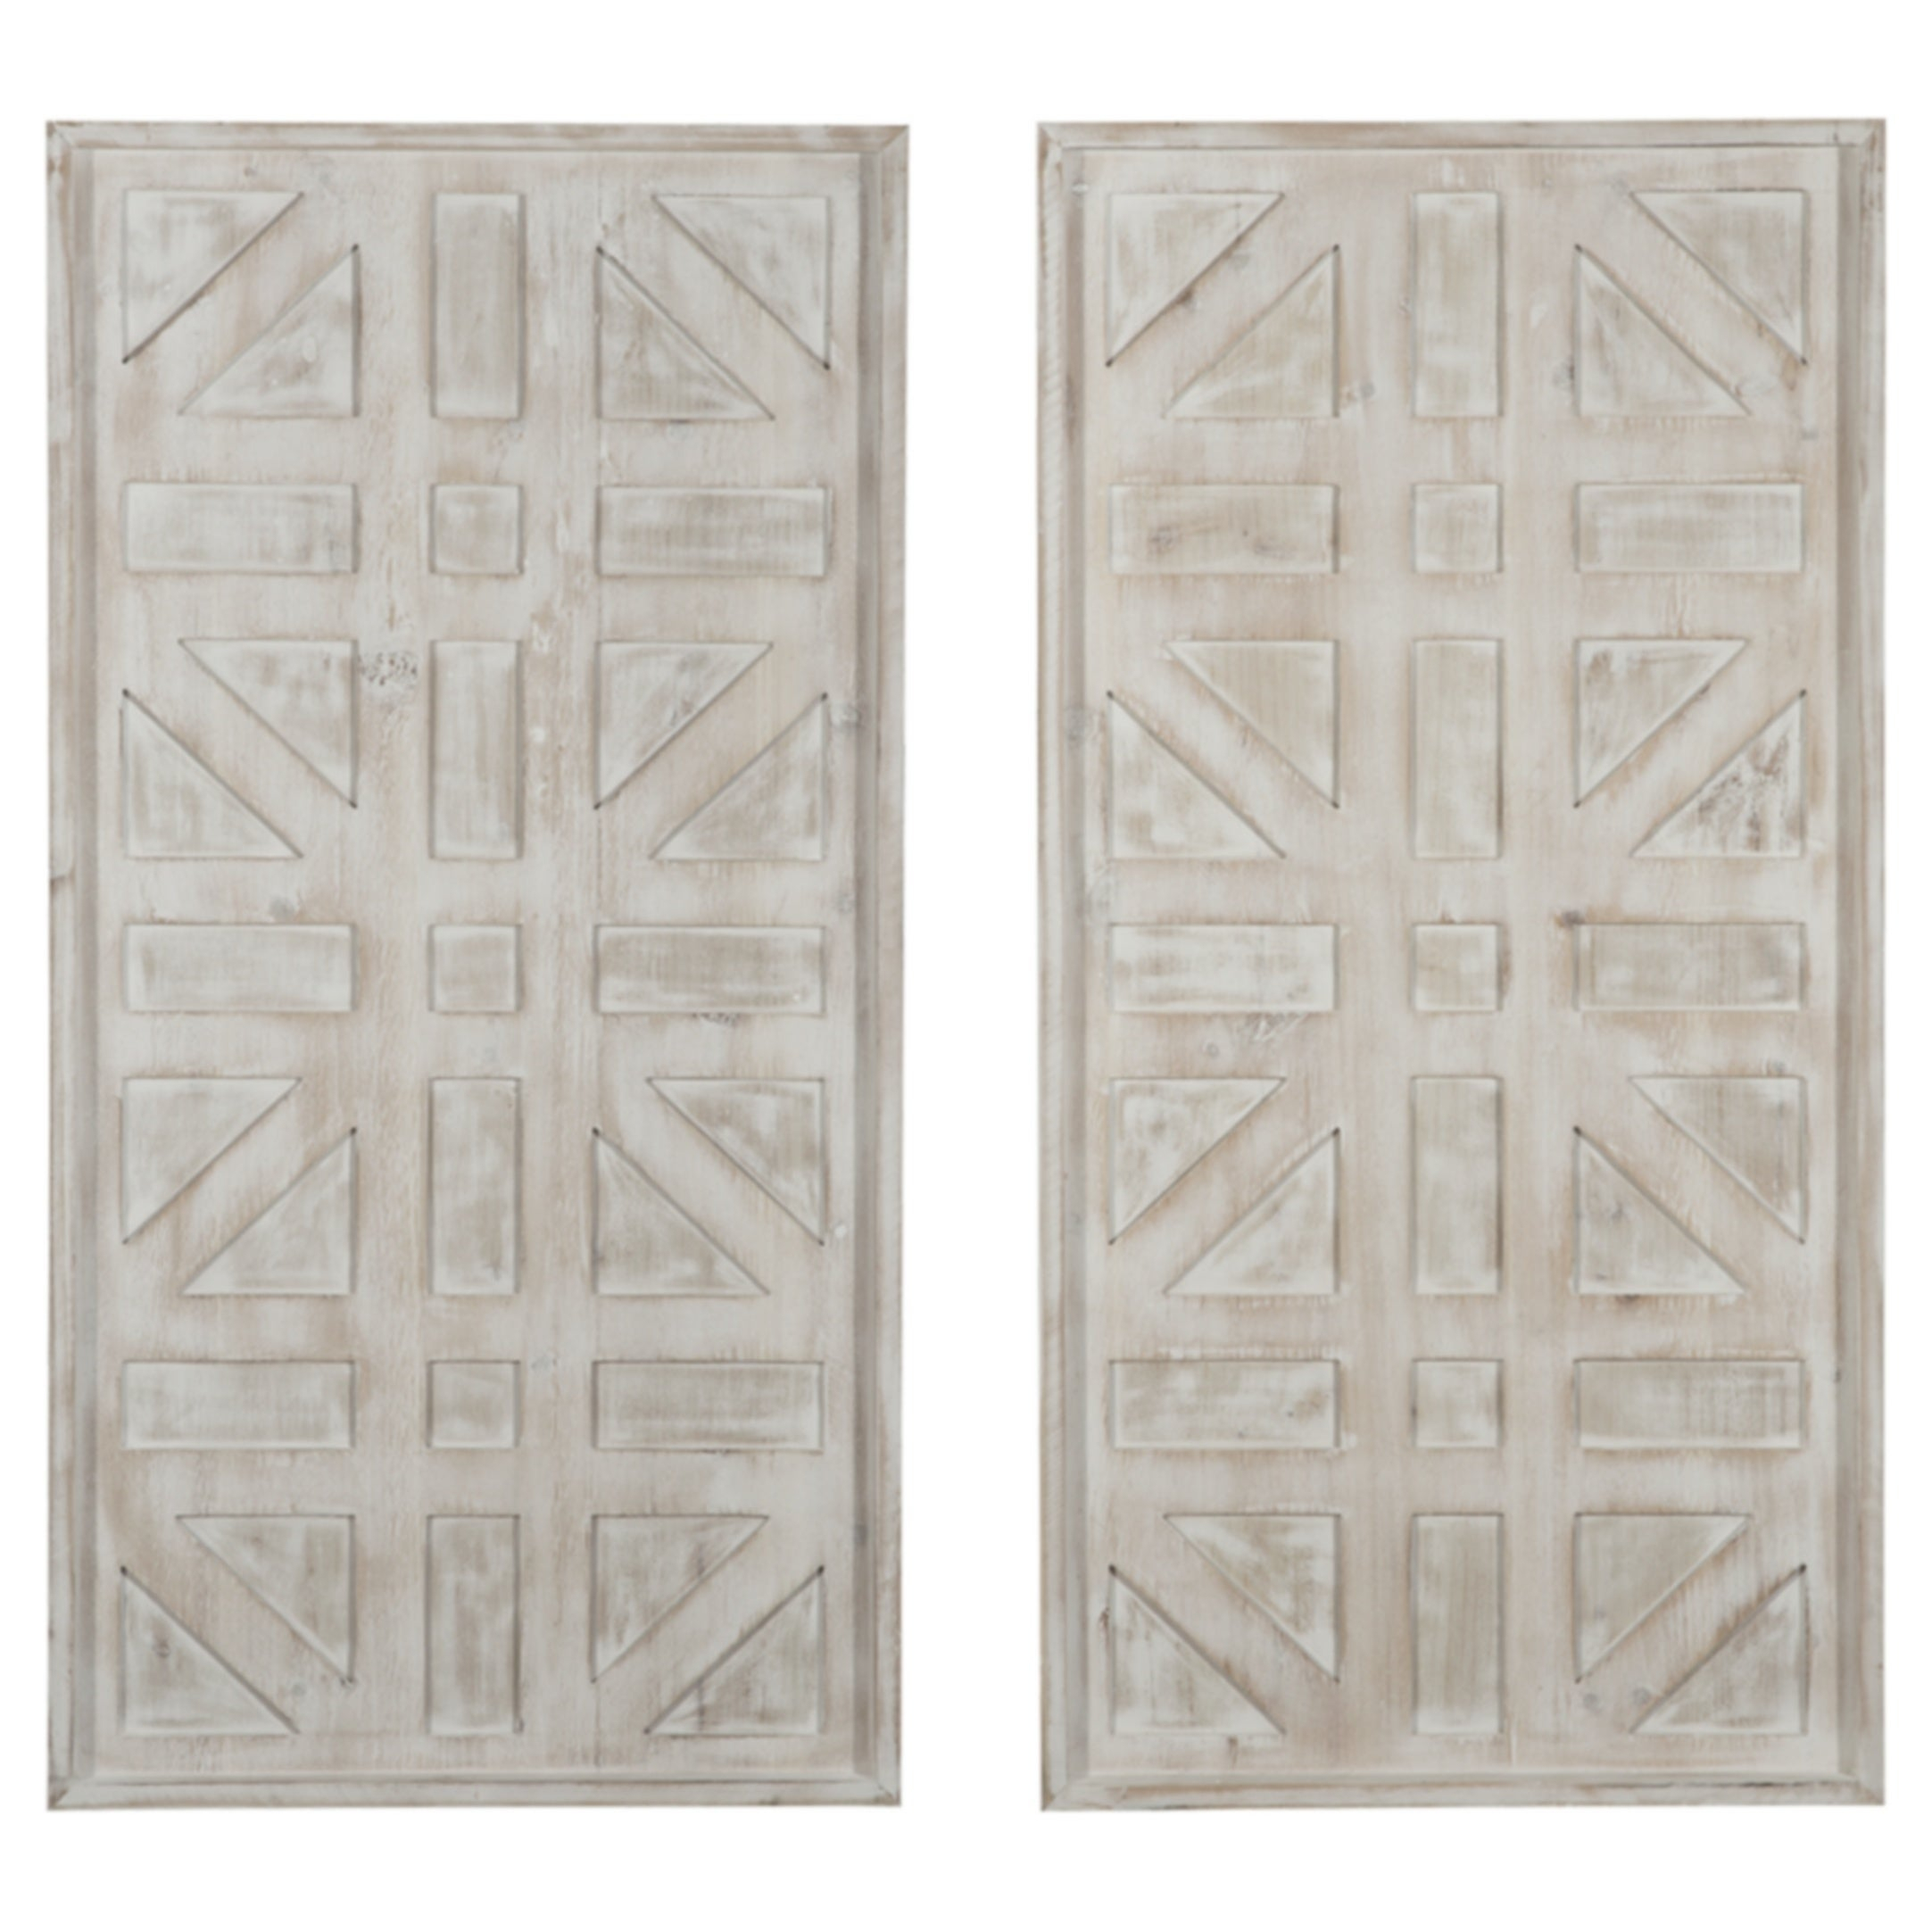 Find Great Art Gallery Deals Shopping At Overstock with Preferred 2 Piece Panel Wood Wall Decor Sets (Set Of 2)